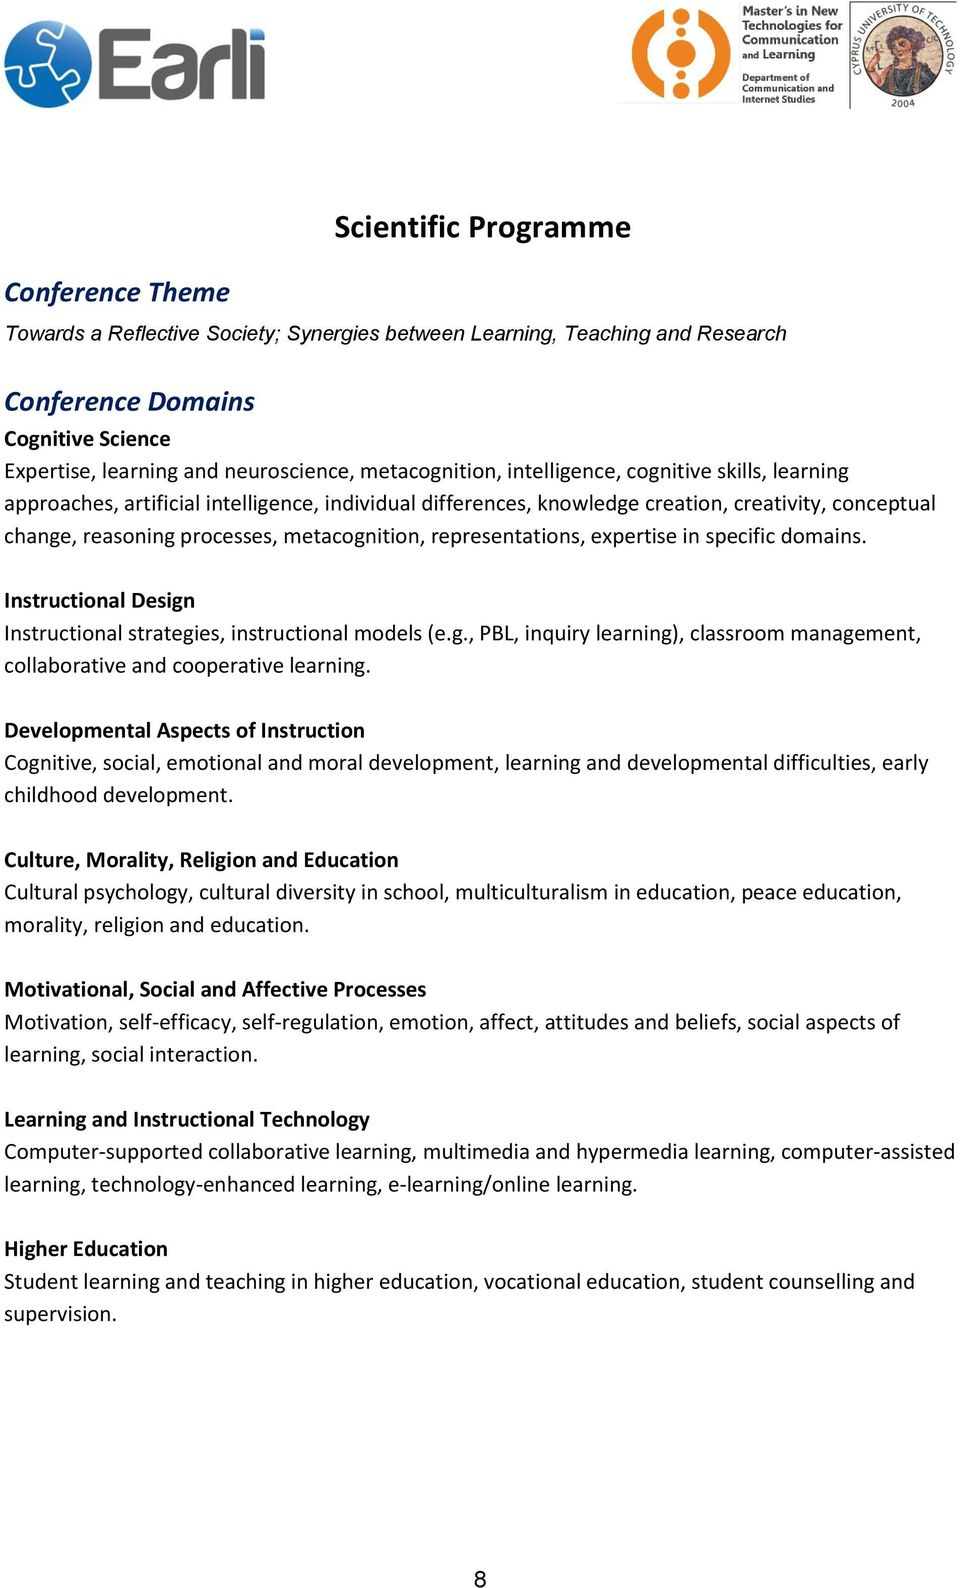 metacognition, representations, expertise in specific domains. Instructional Design Instructional strategies, instructional models (e.g., PBL, inquiry learning), classroom management, collaborative and cooperative learning.